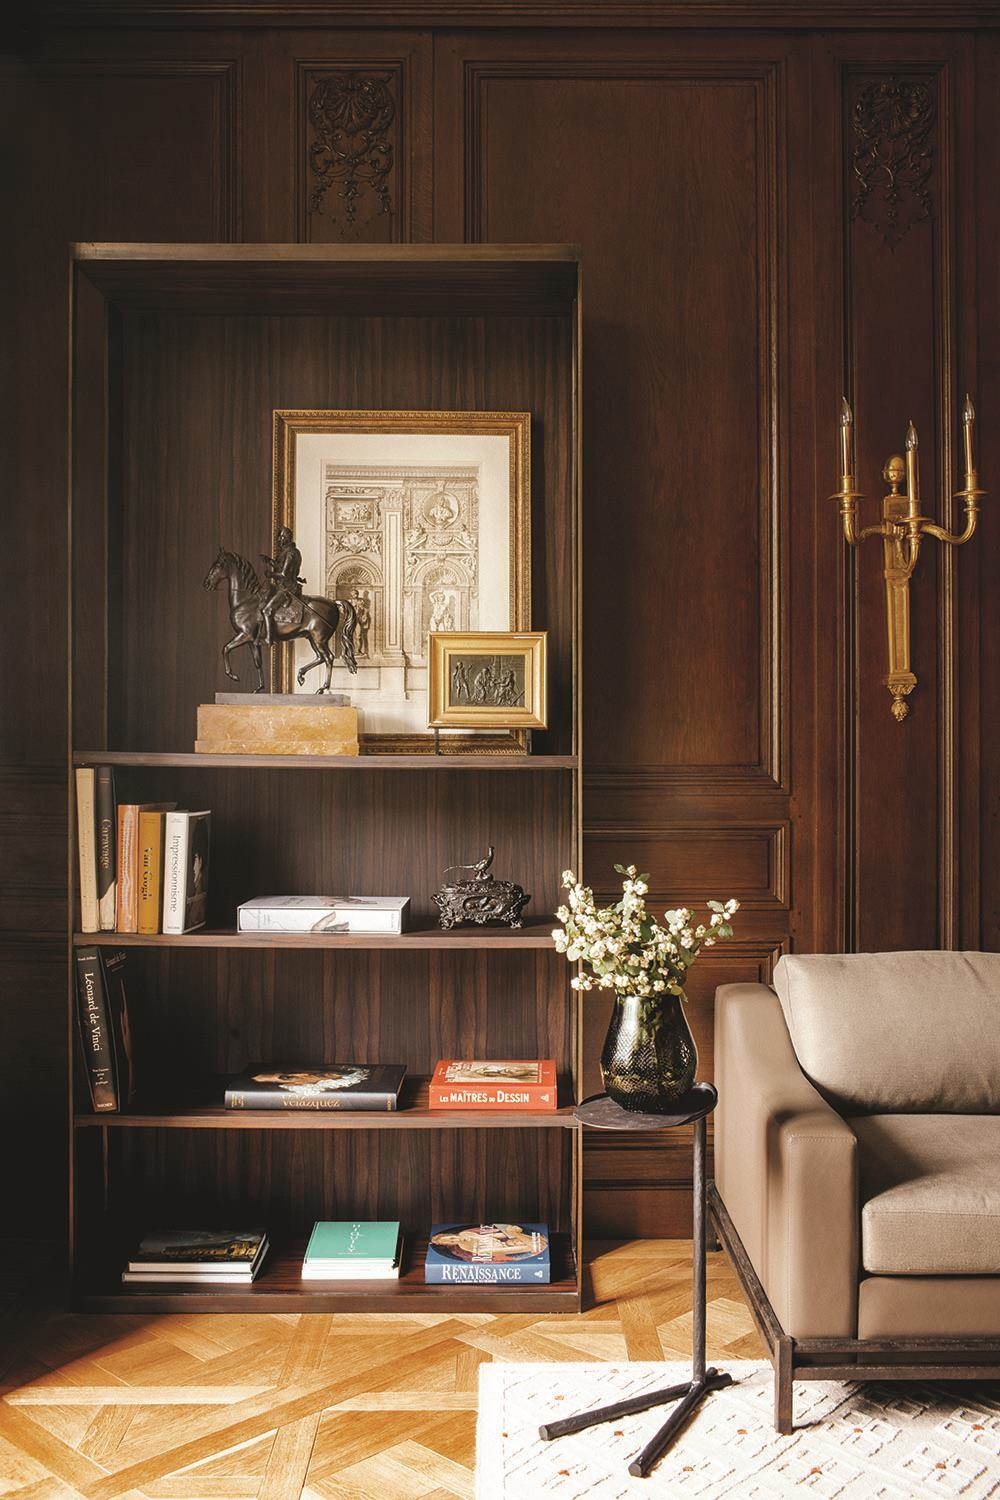 Decorating Like a Parisian - It's All About Eclecticism and Paying Homage to the Past